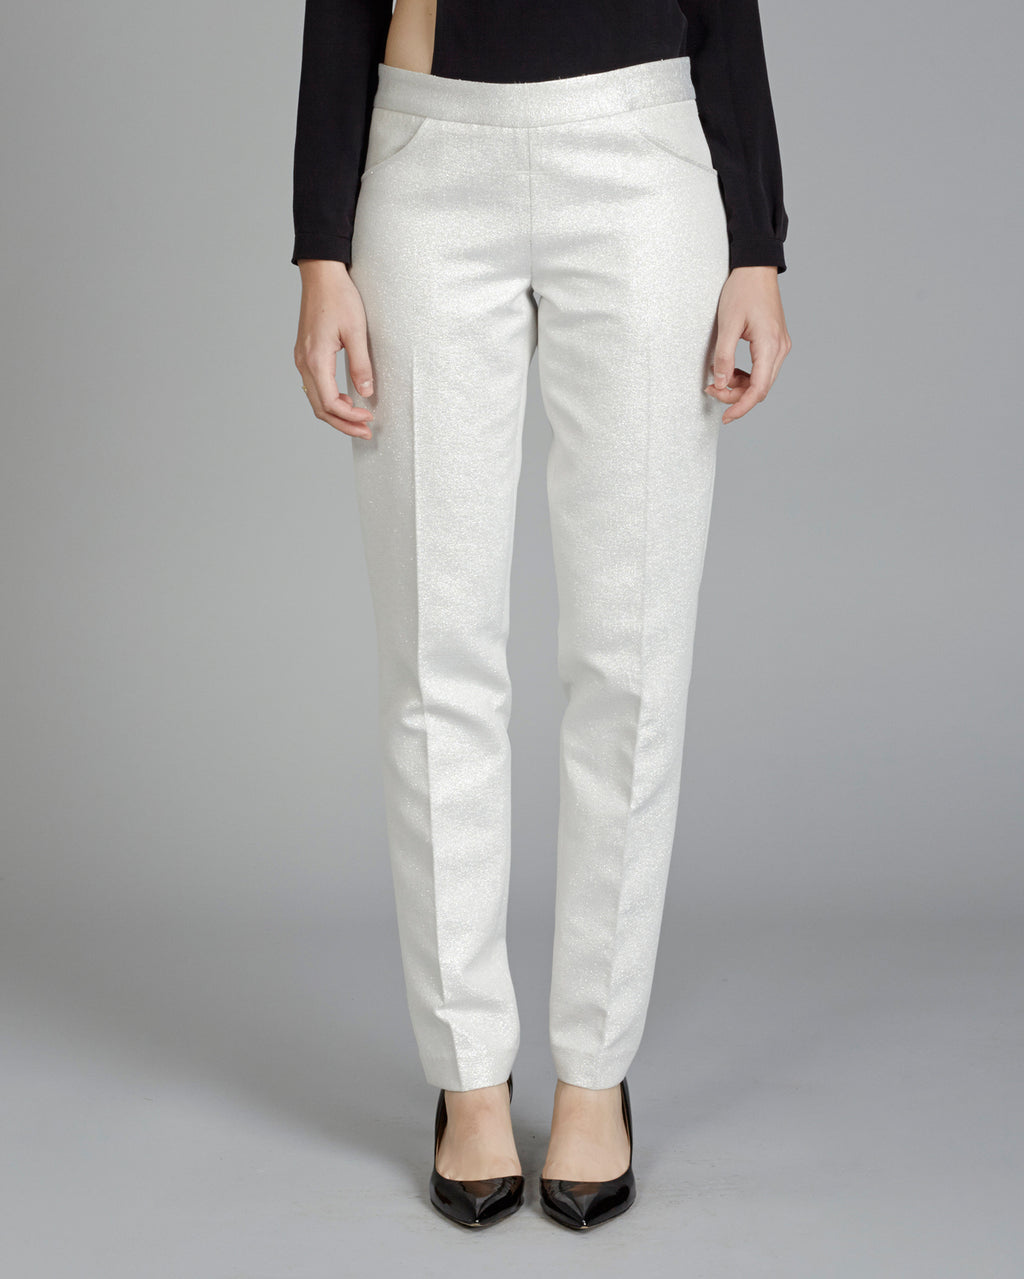 Adagio Sparkle Cotton Trouser